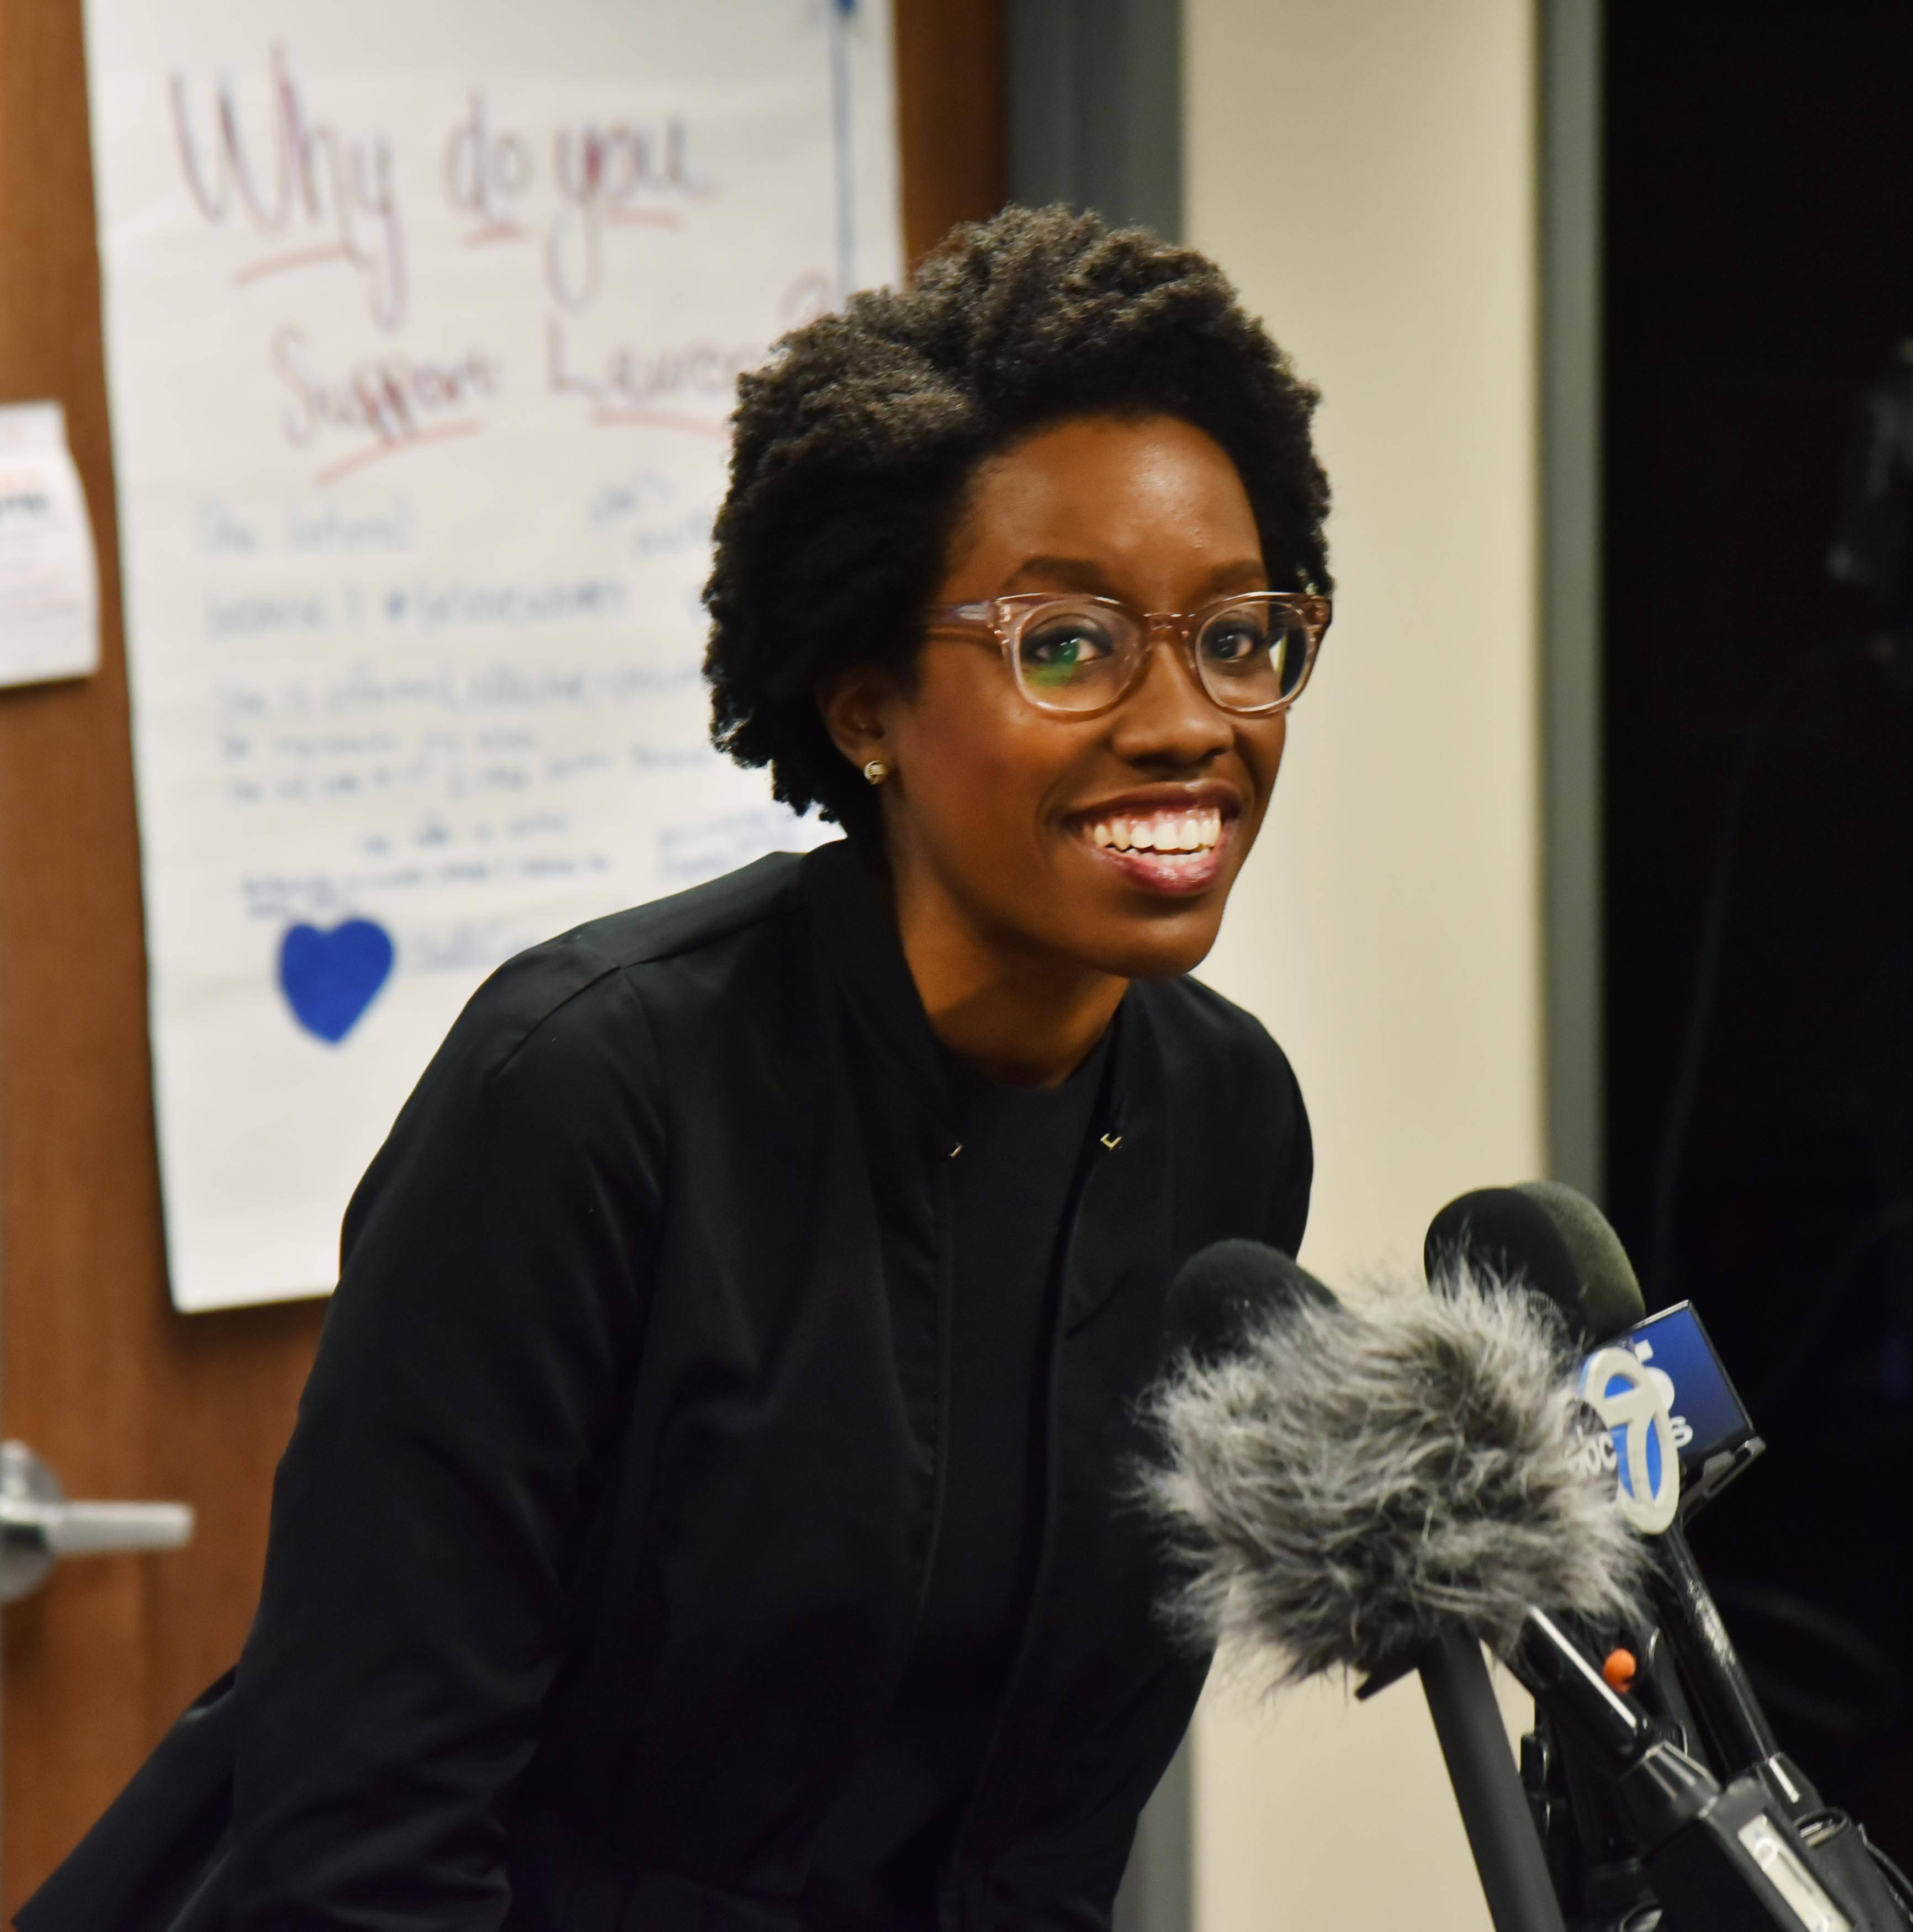 Lauren Underwood talks with volunteers and supporters of her campaign Wednesday at her headquarters in St. Charles. She defeated longtime Republican Randy Hultgren Tuesday for the 14th Congressional District seat.